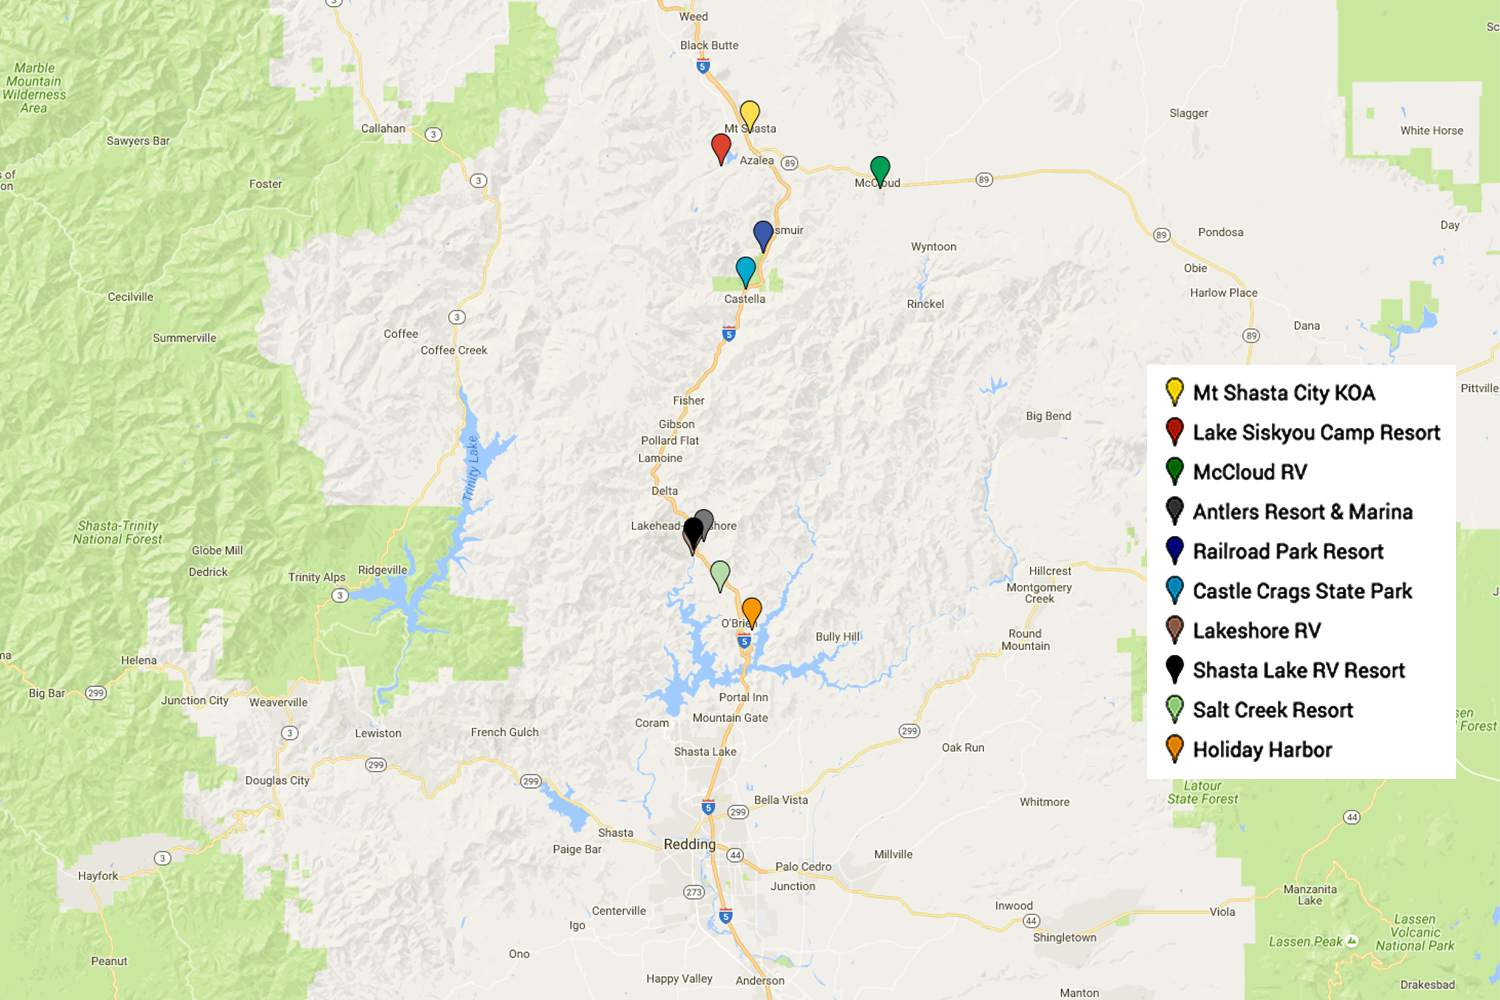 Campgrounds in the Mount Shasta Area